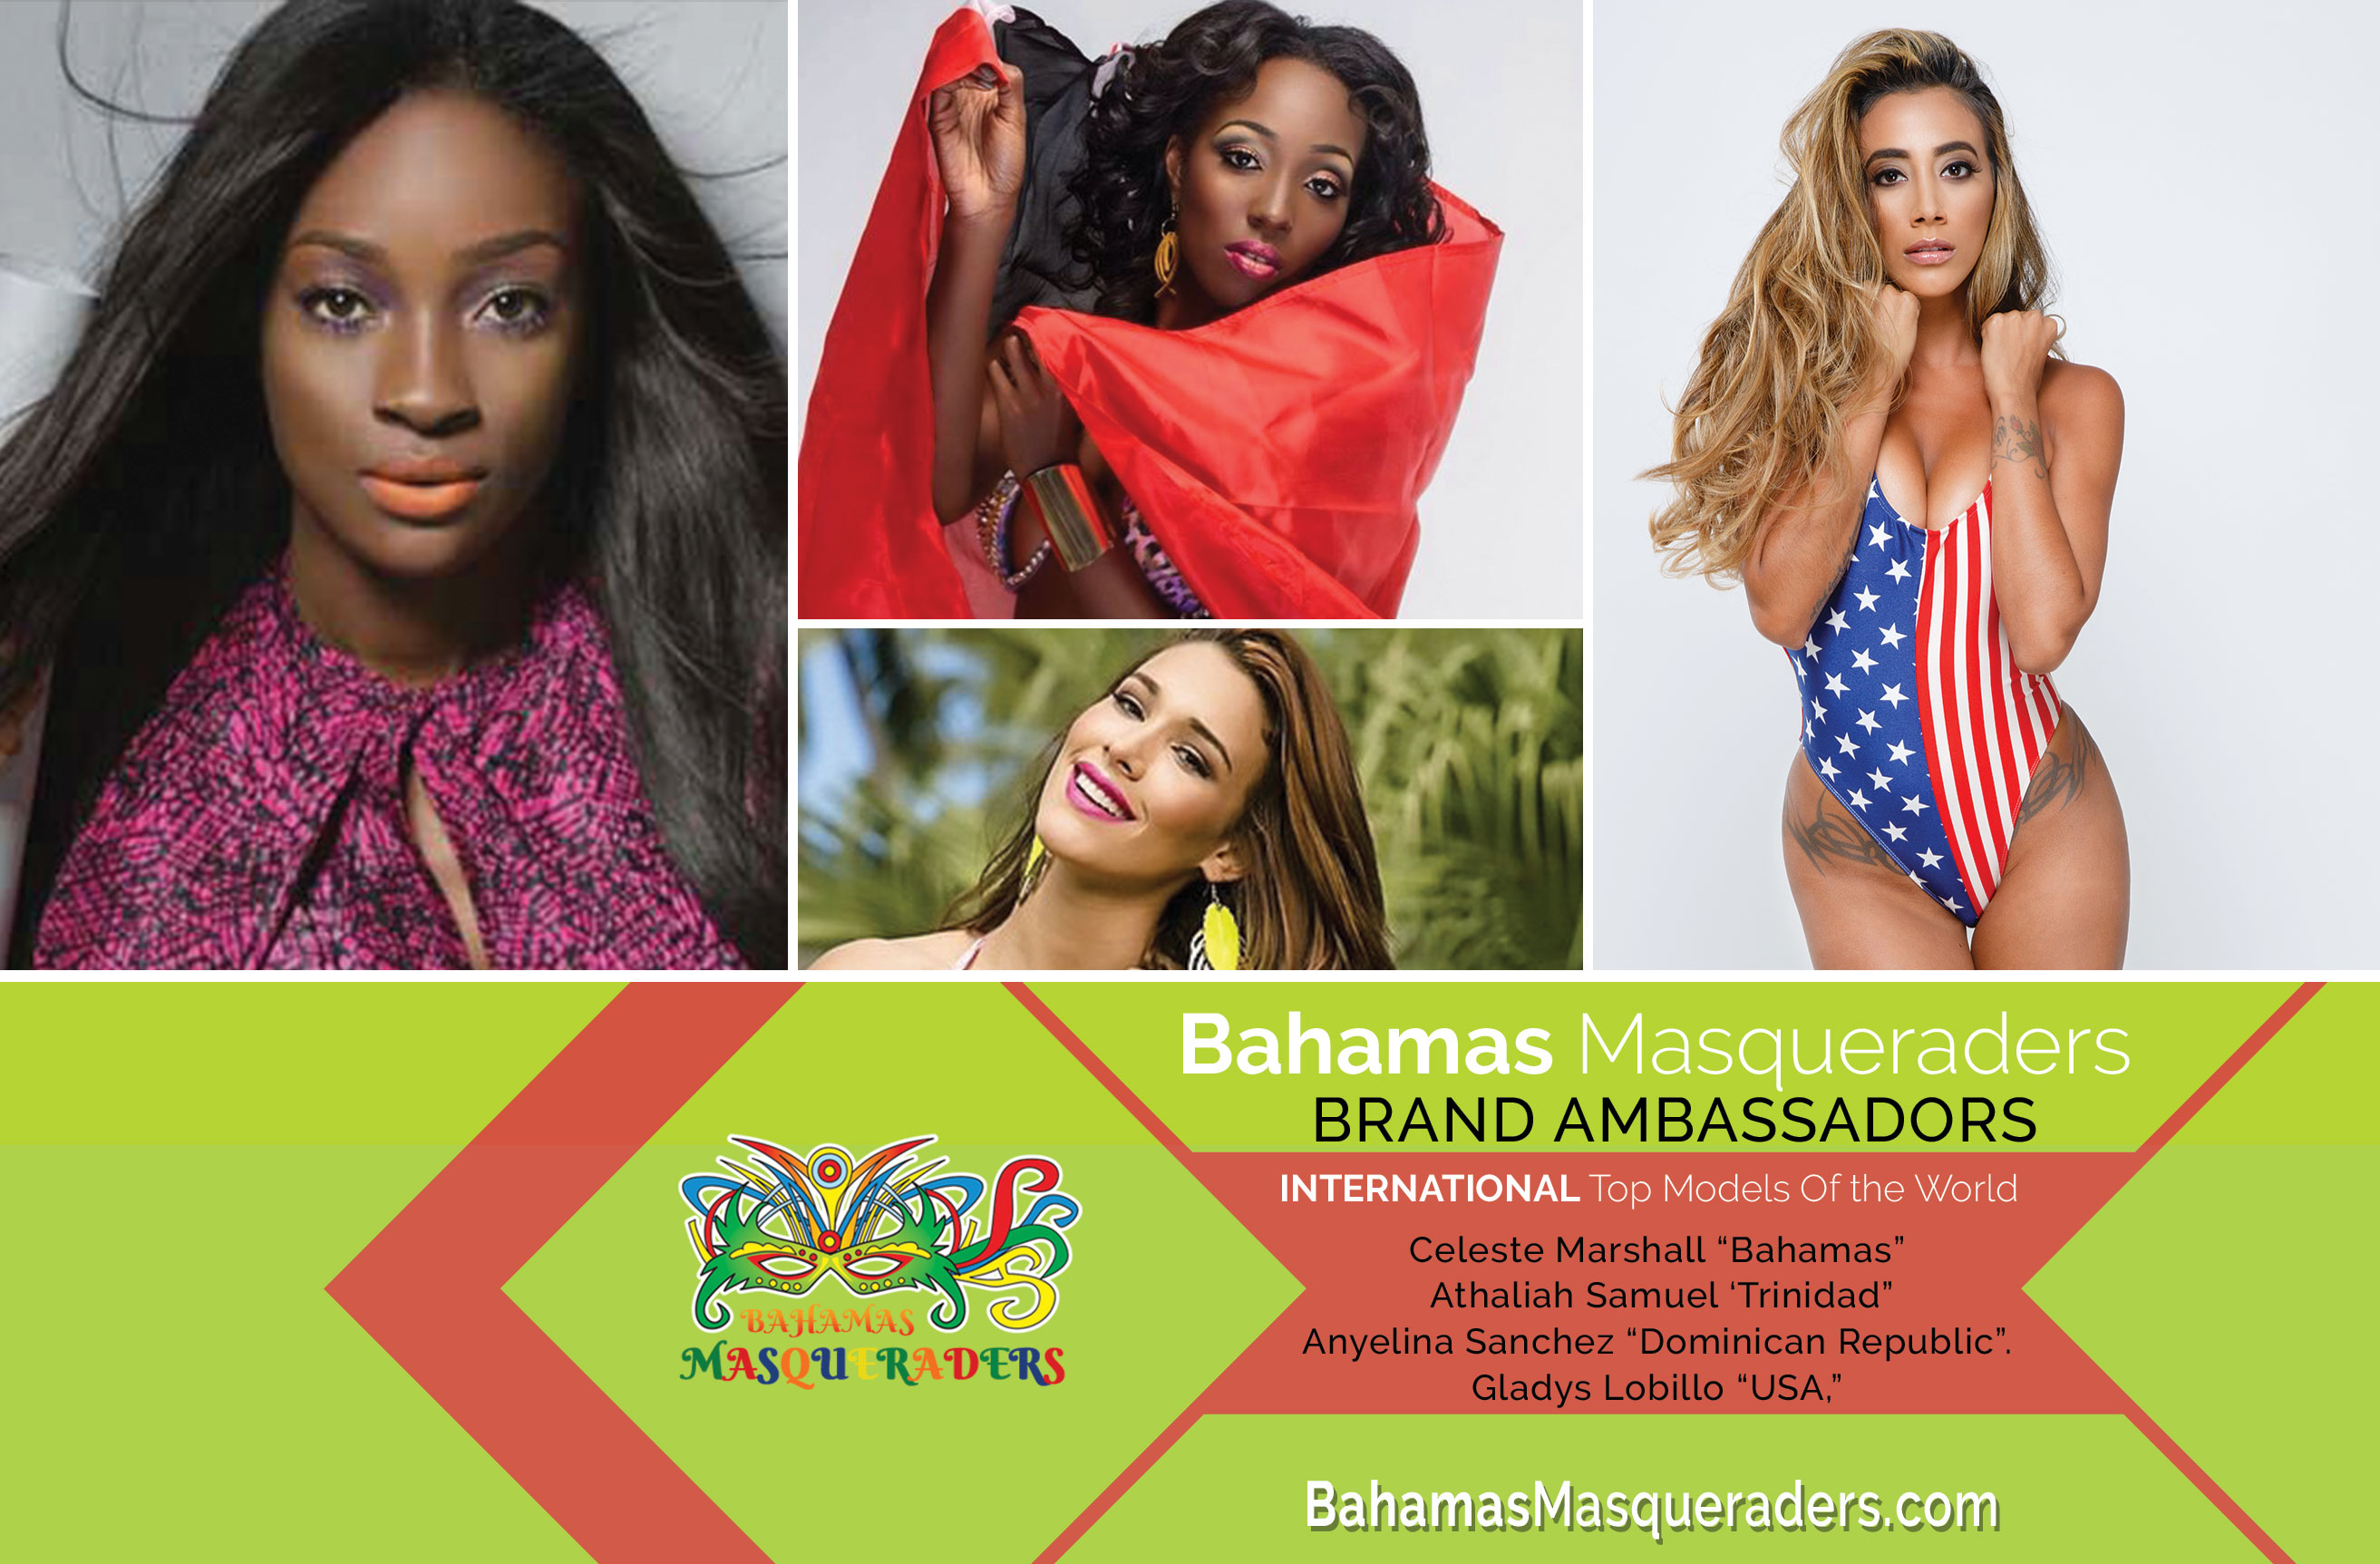 Top Models of the World Support Diversity in Bahamian Cultural Tourism